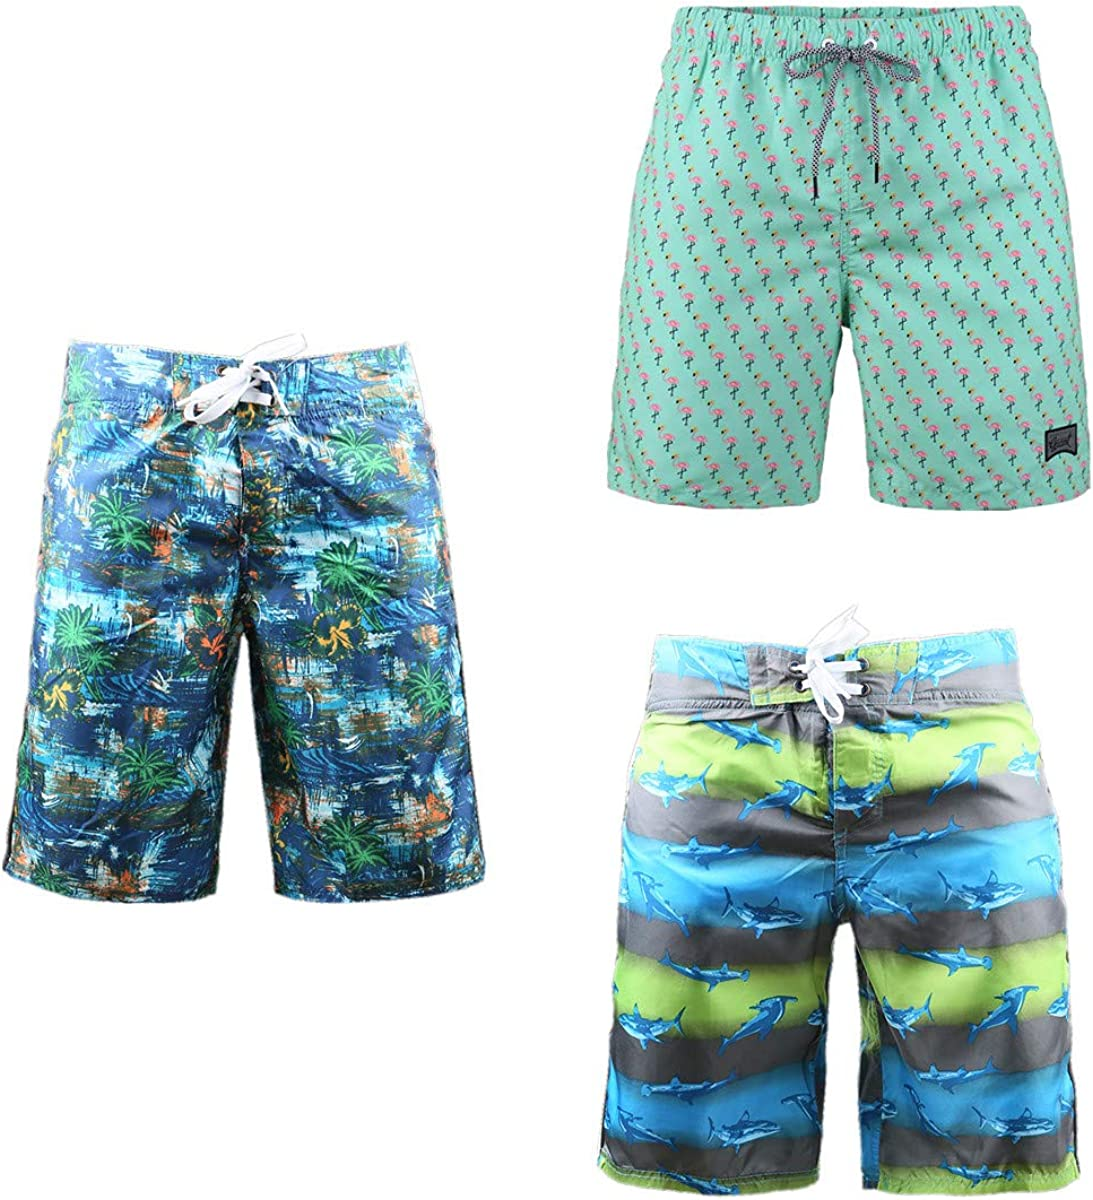 Beautiful Giant 3-Pack Men's Active Surfing Board Shorts Sexy Thin Comfy Qulity Shorts Logo Embroidered with Mesh Lined